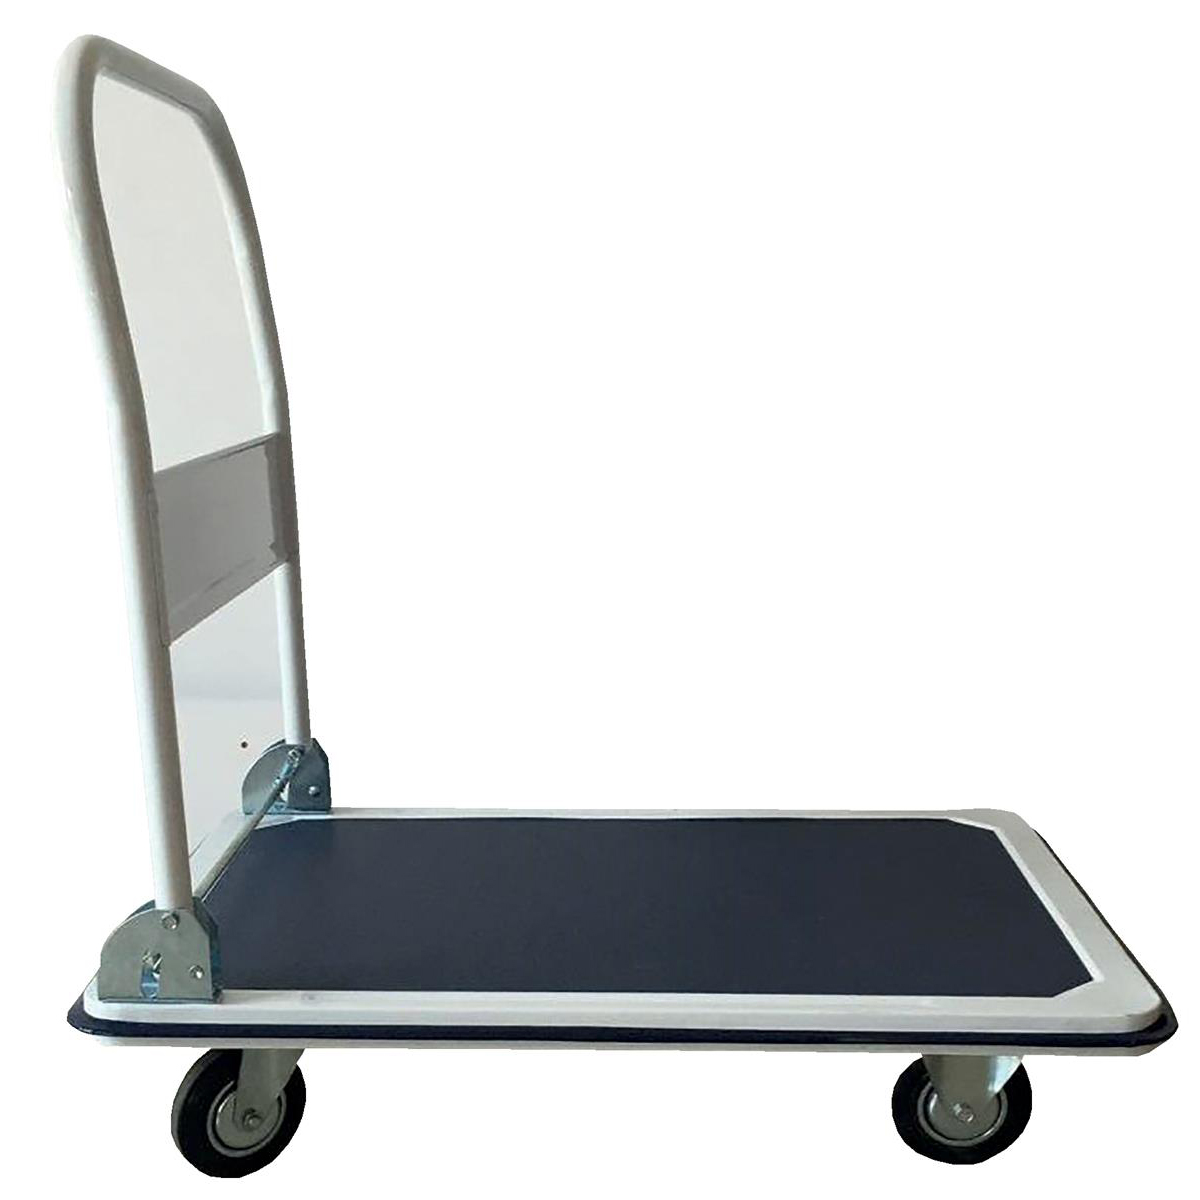 Platform Trucks 5 Star Facilities Platform Truck Medium-duty Capacity 300kg Baseboard W900xD600mm Blue and Grey